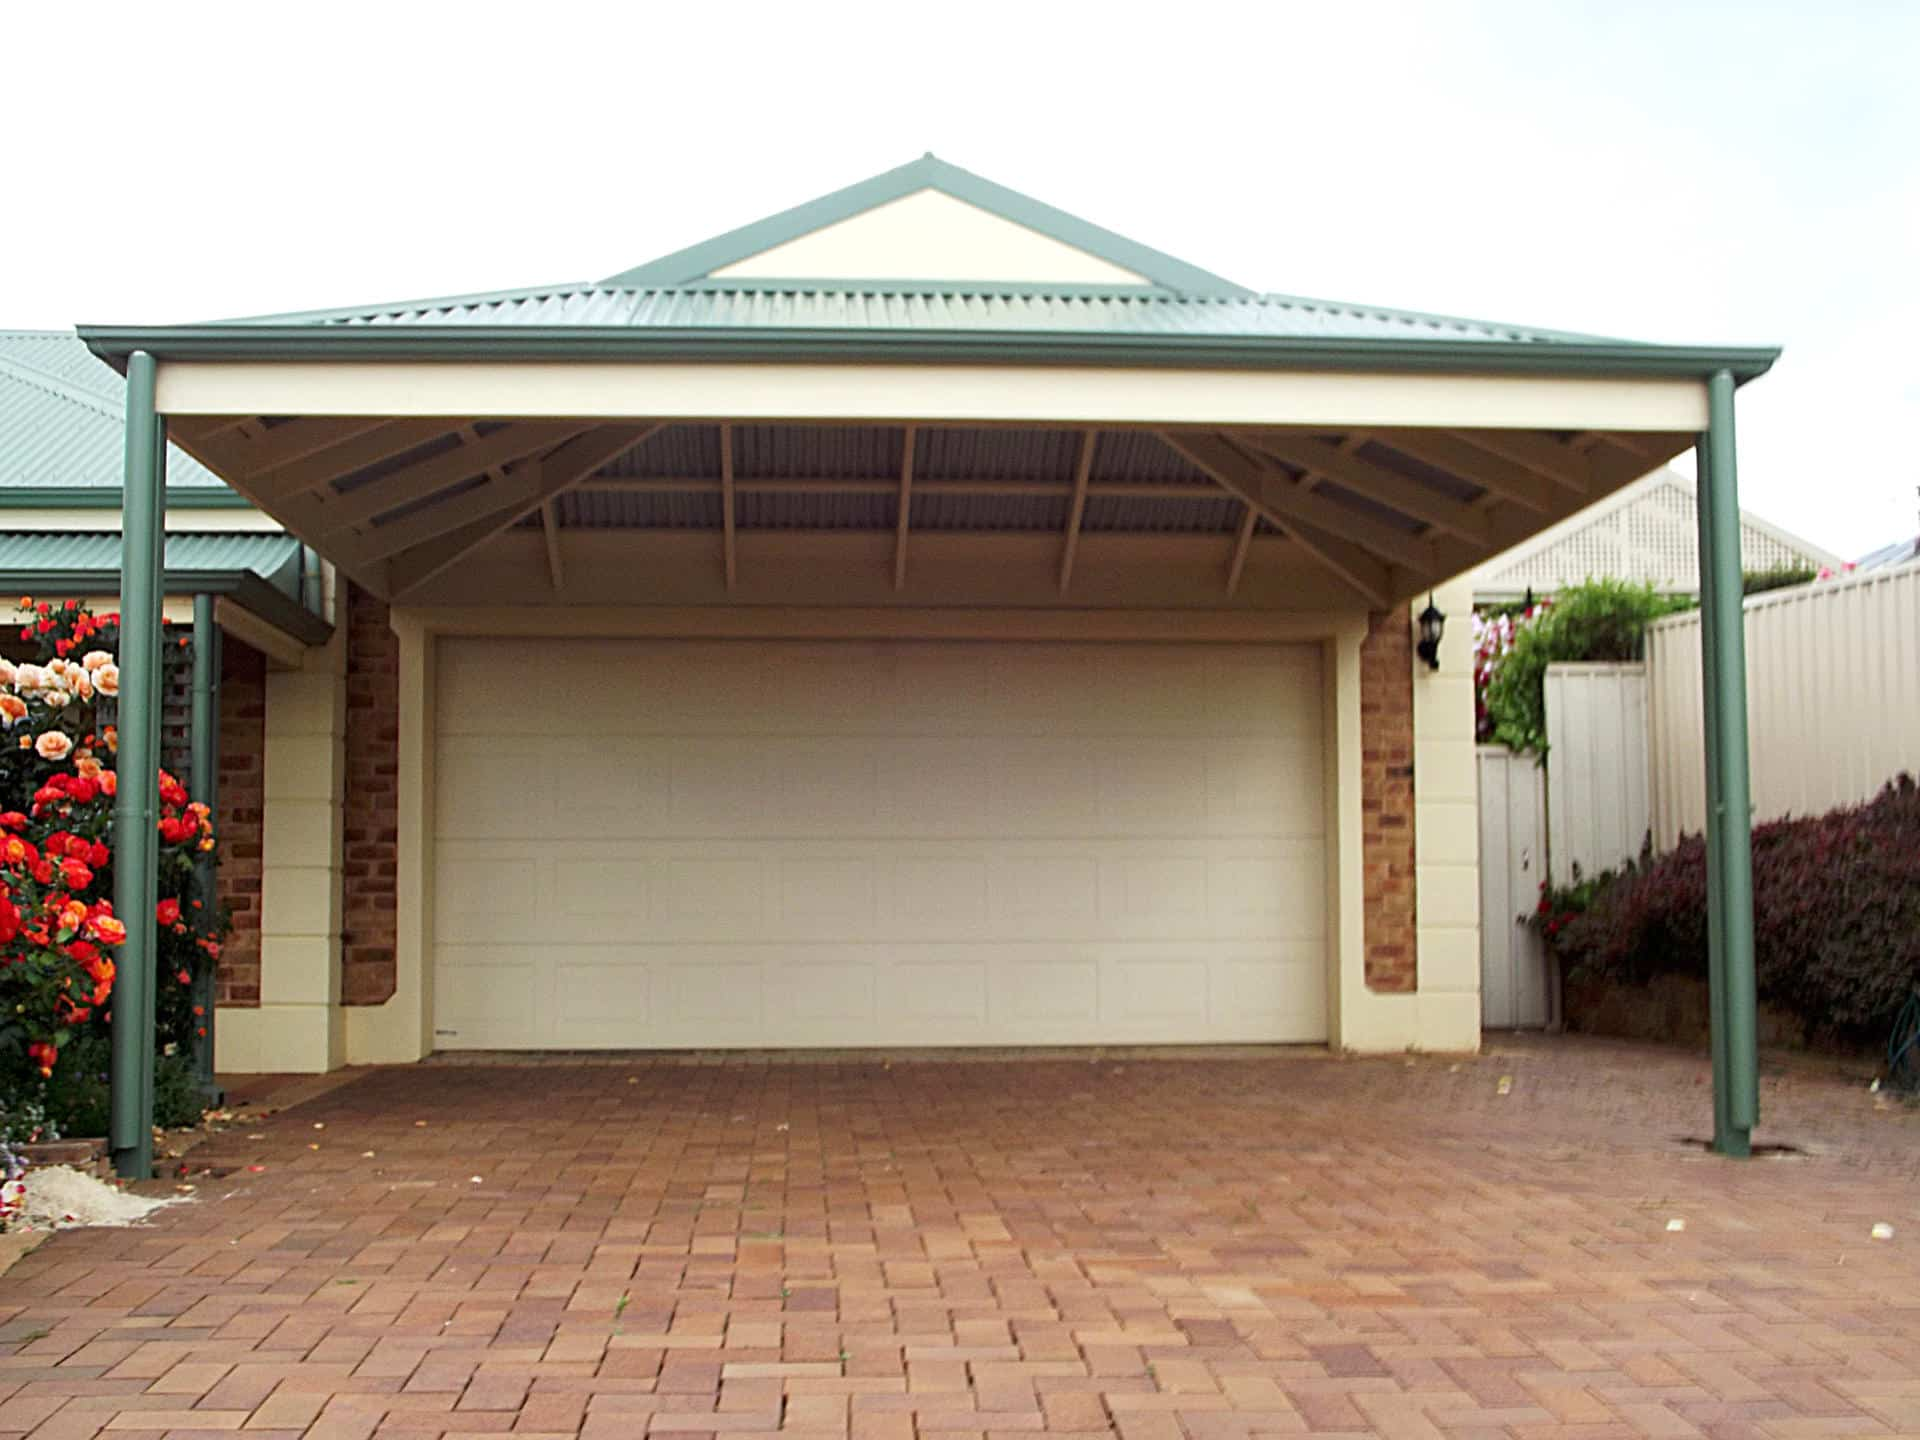 Save Water and Save Money with a Home Carport - How to save money and water with a carport, Australian Outdoor Living.